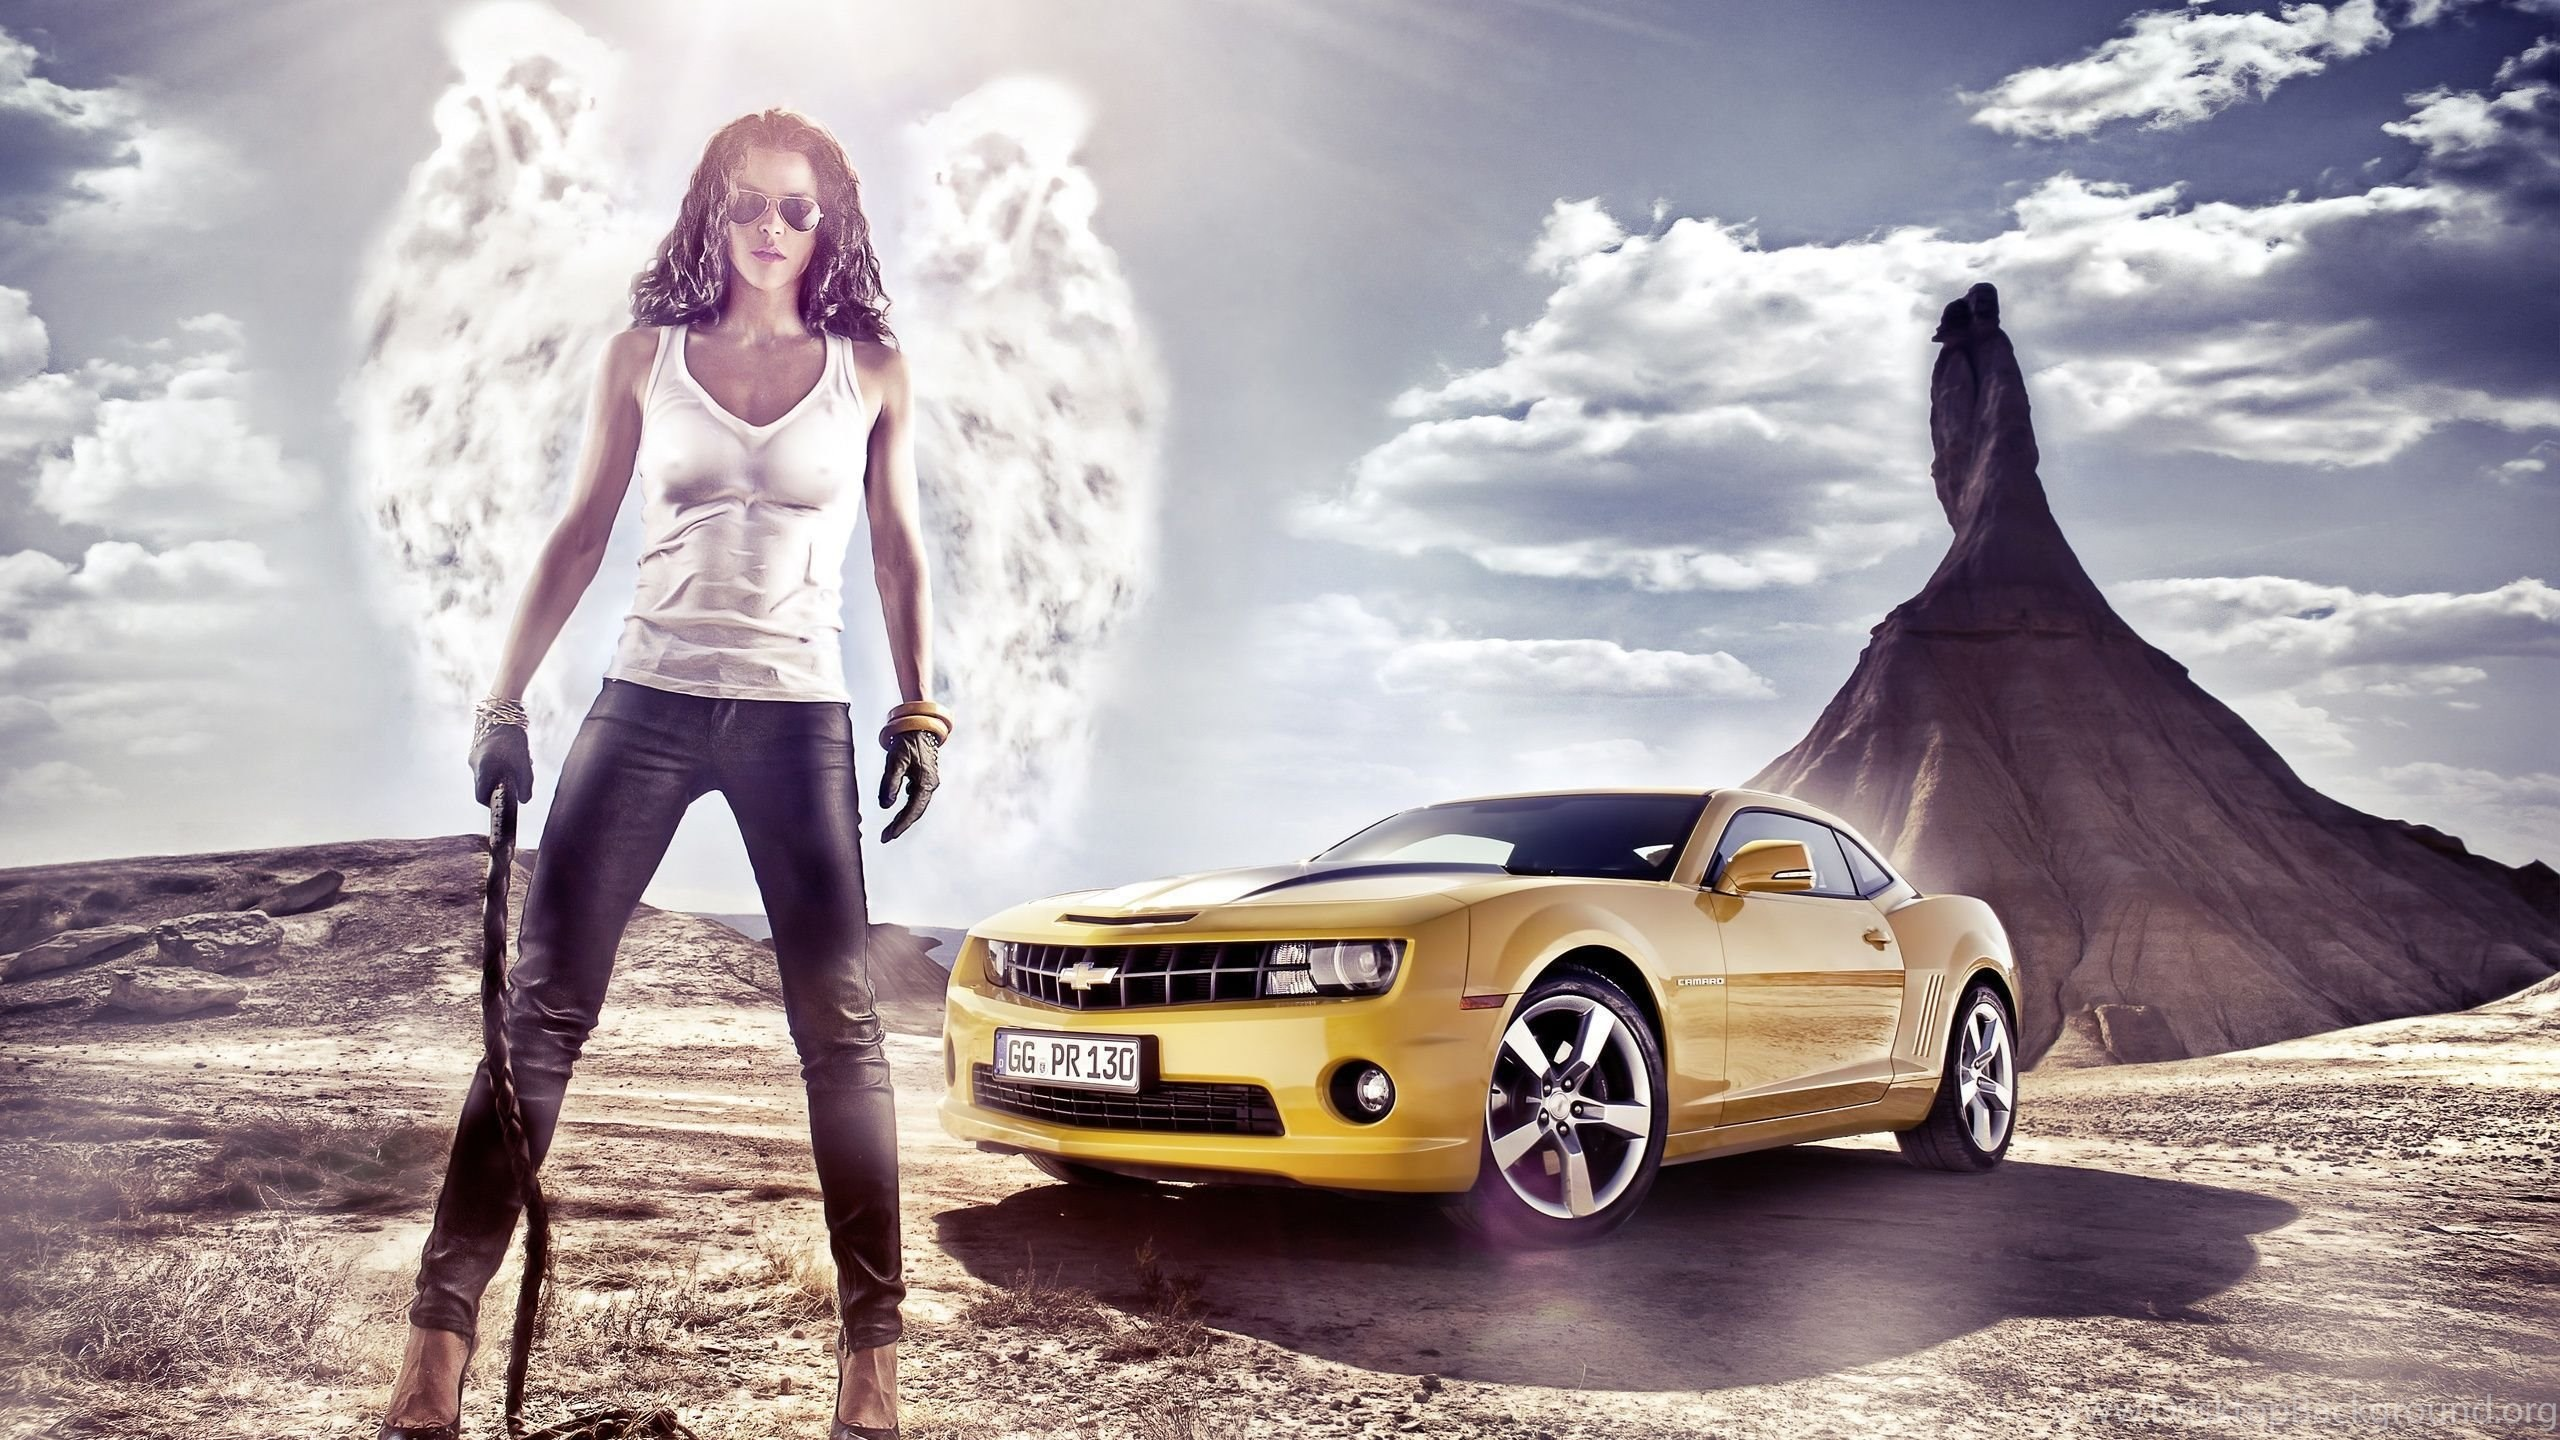 download girls cars wallpaper backgrounds desktop background